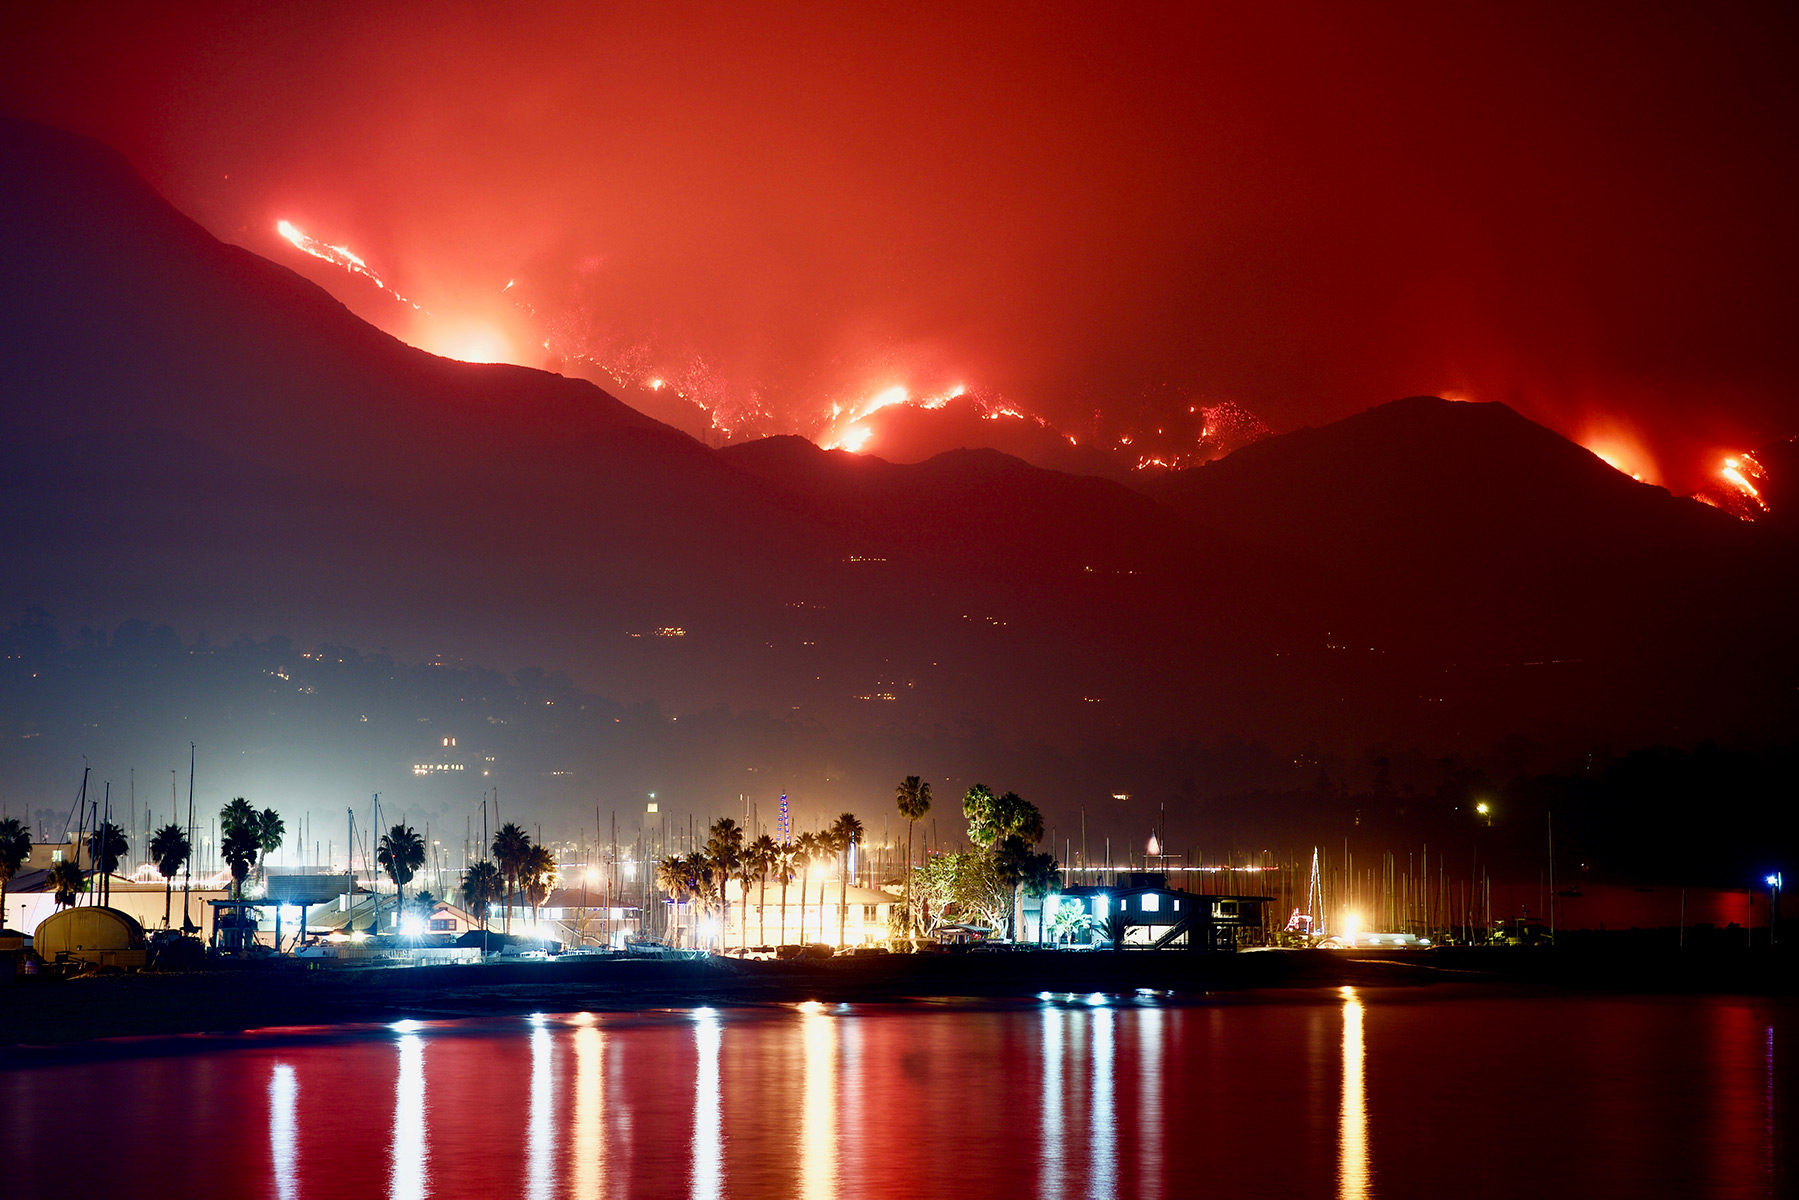 Closing Schools And Moving Finals Due To Thomas Fire The Santa Barbara Independent